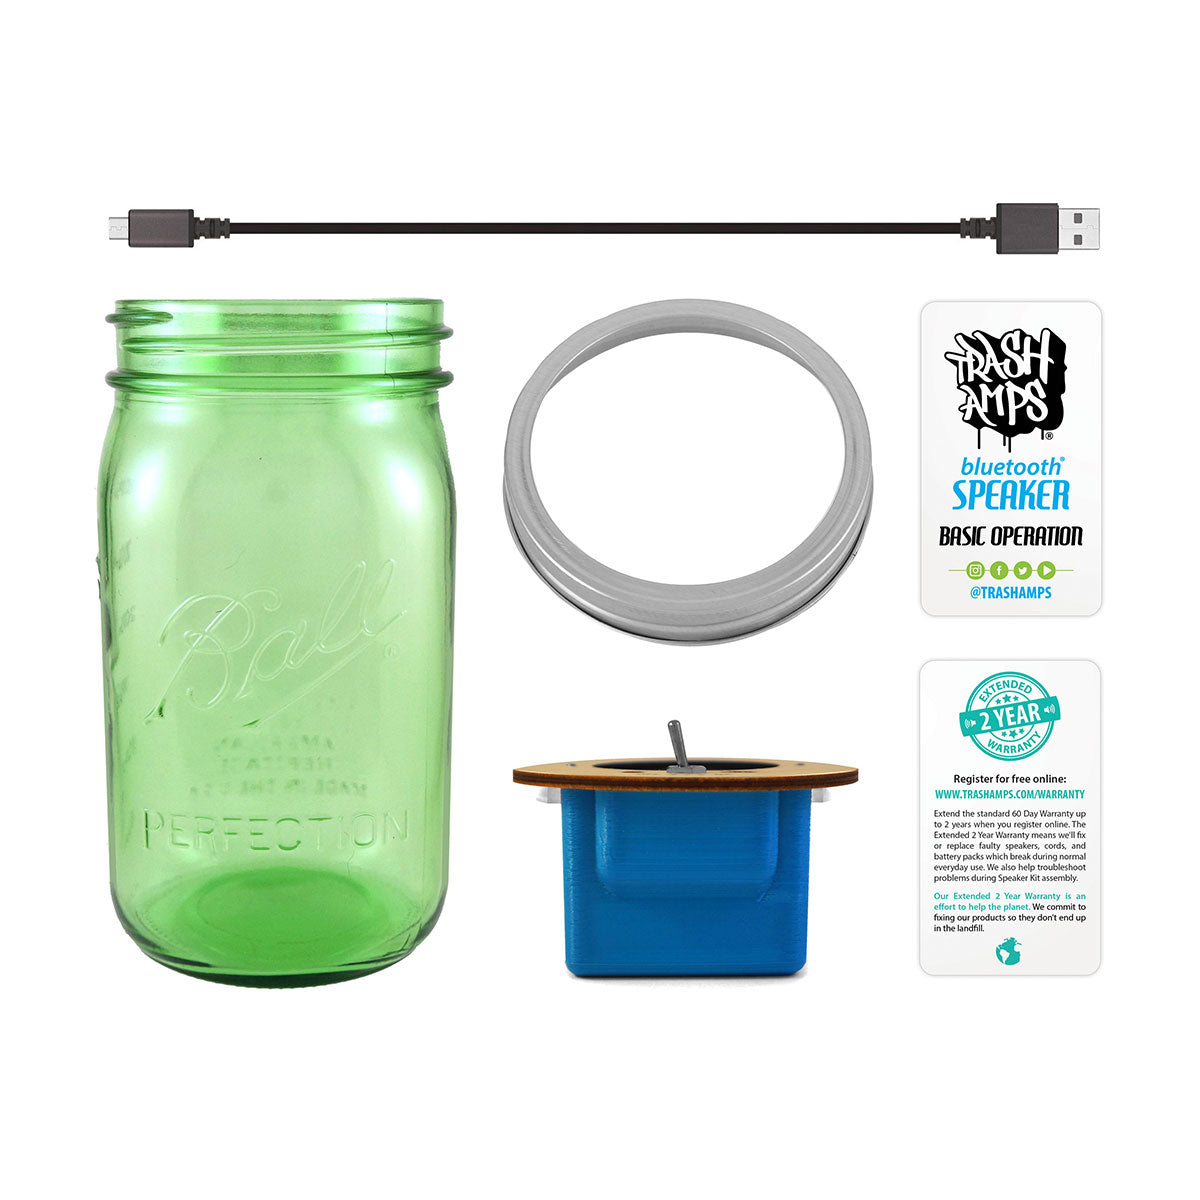 Bluetooth Mason Jar Speaker with Green Jar (32 oz)